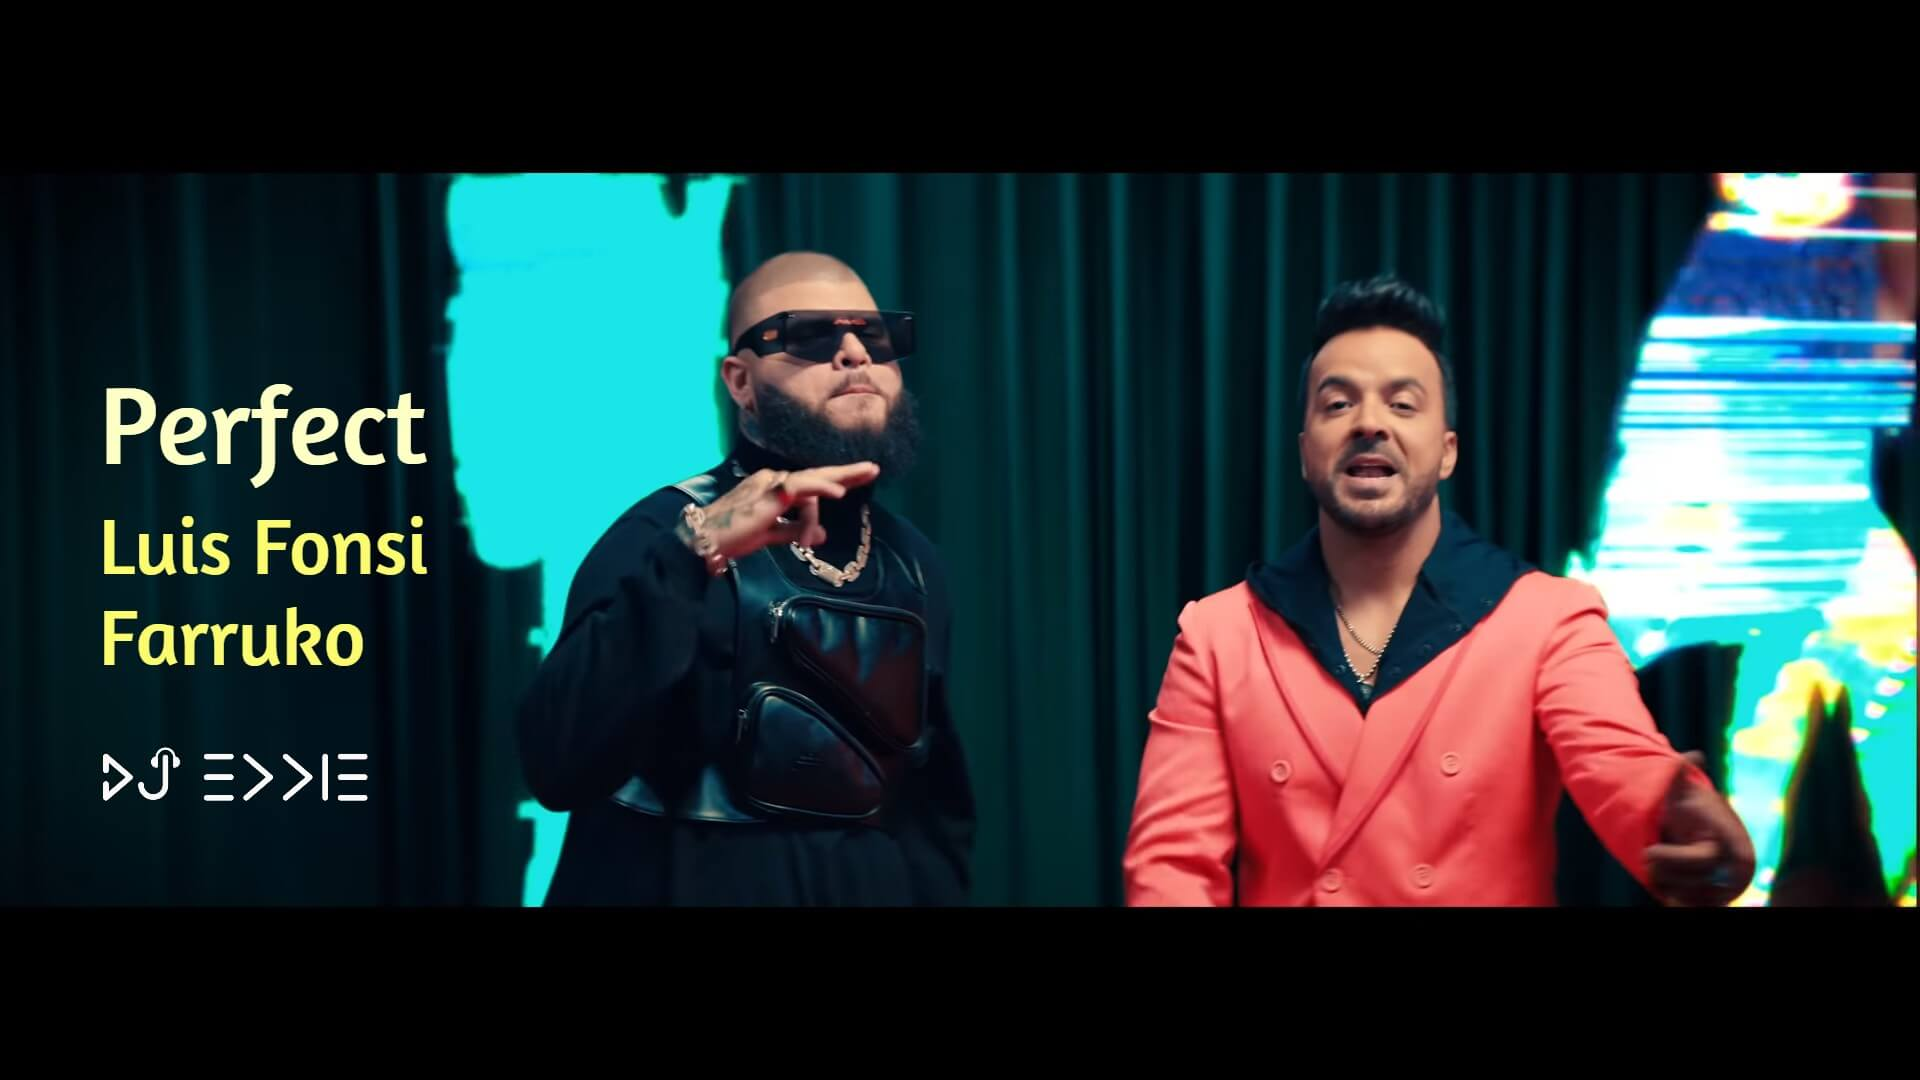 Luis Fonsi, Farruko - Perfect